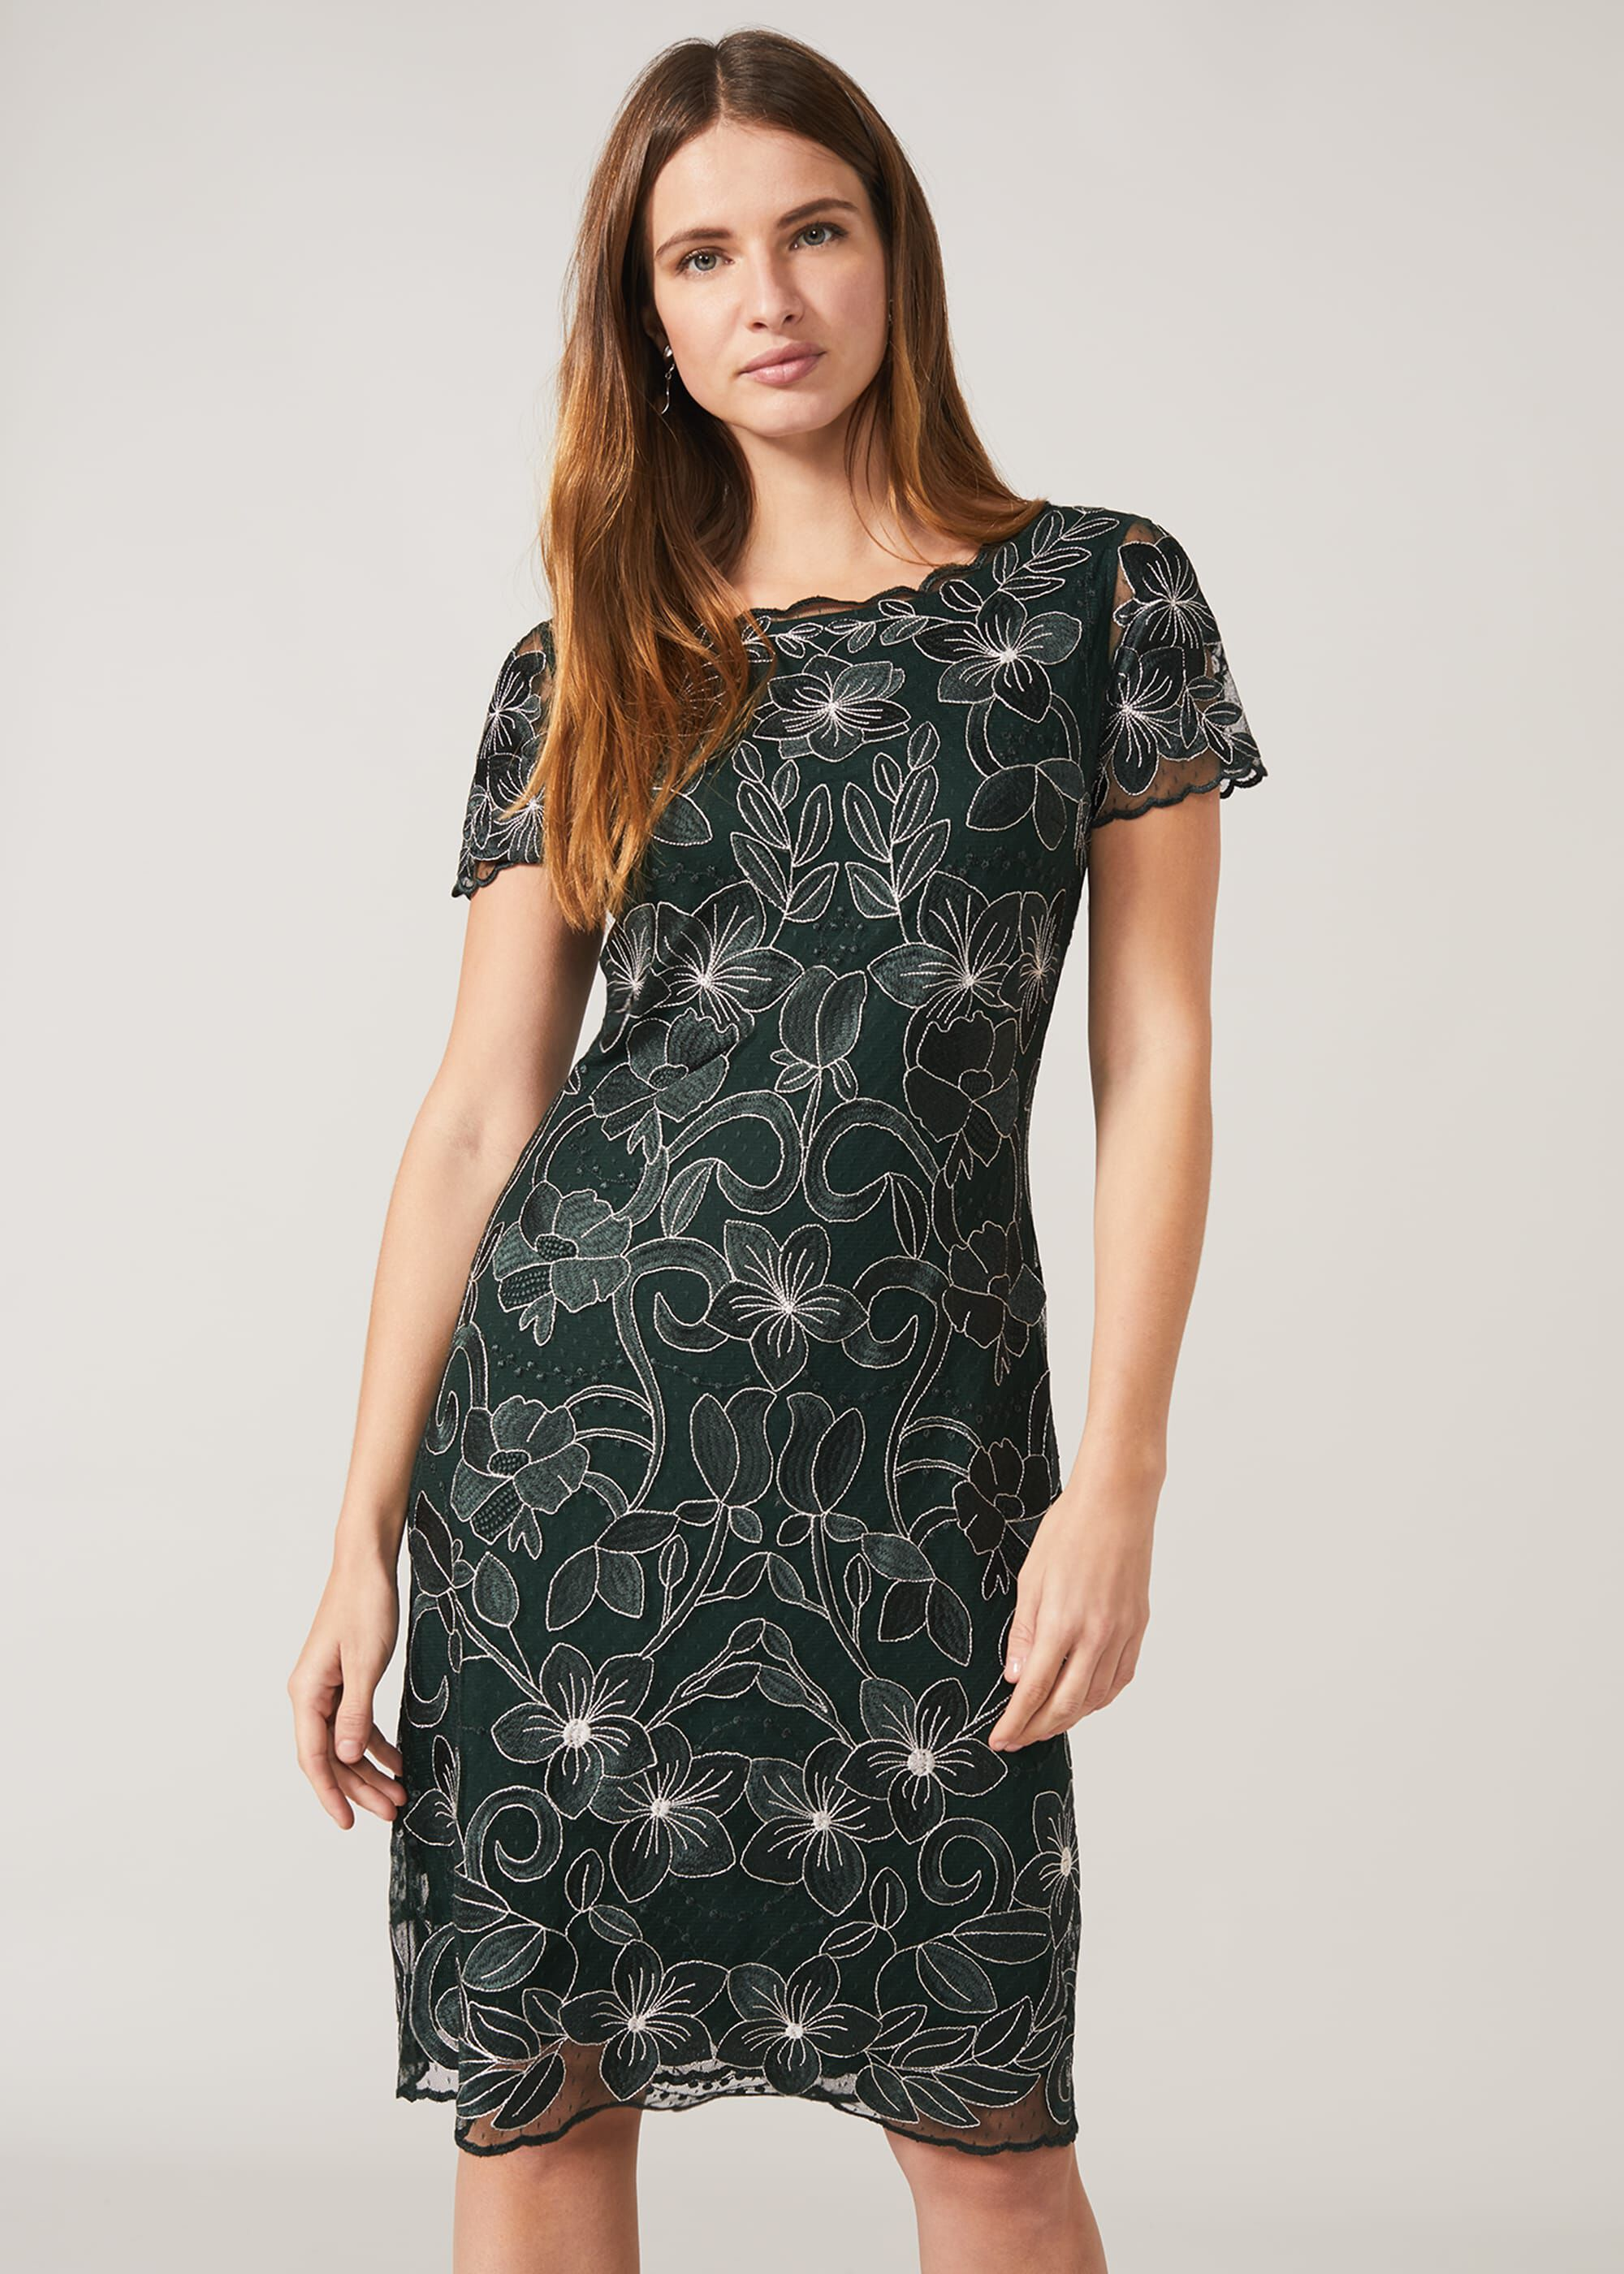 Phase Eight Nessa Embroidered Dress, Green, Occasion Dress